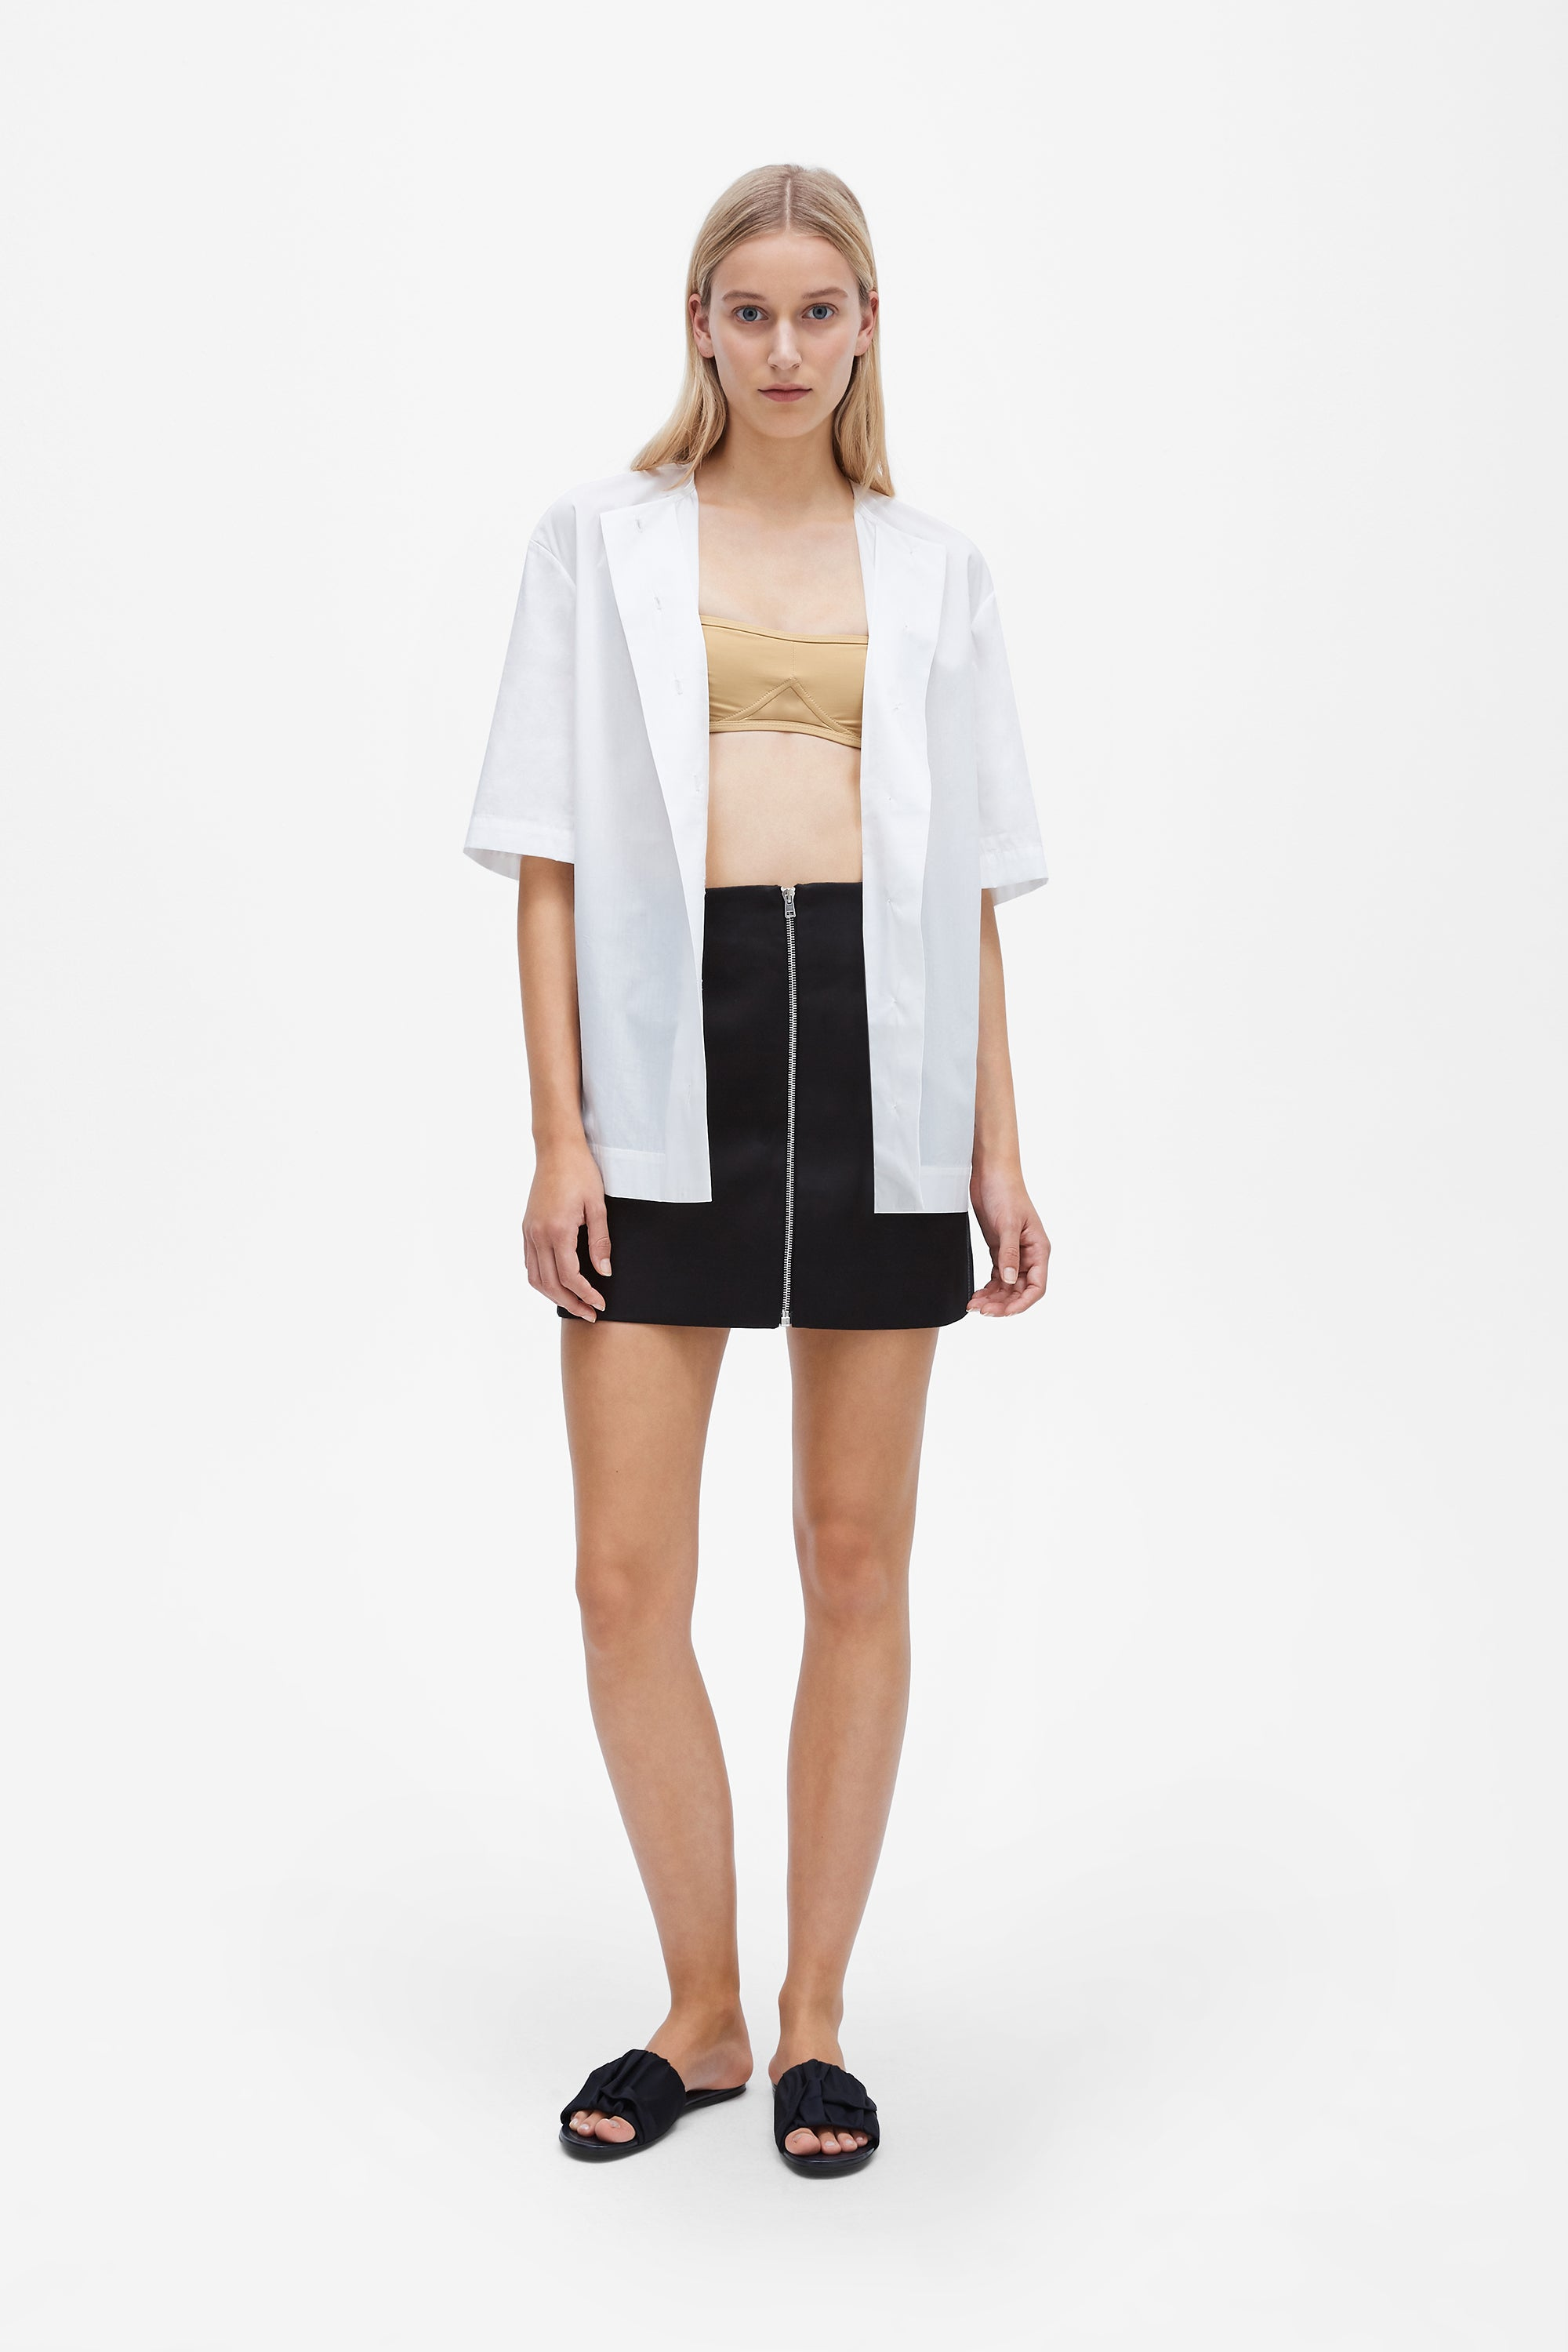 Button up short sleeve shirt - Silk cotton poplin - White - Resortwear top - Her Line